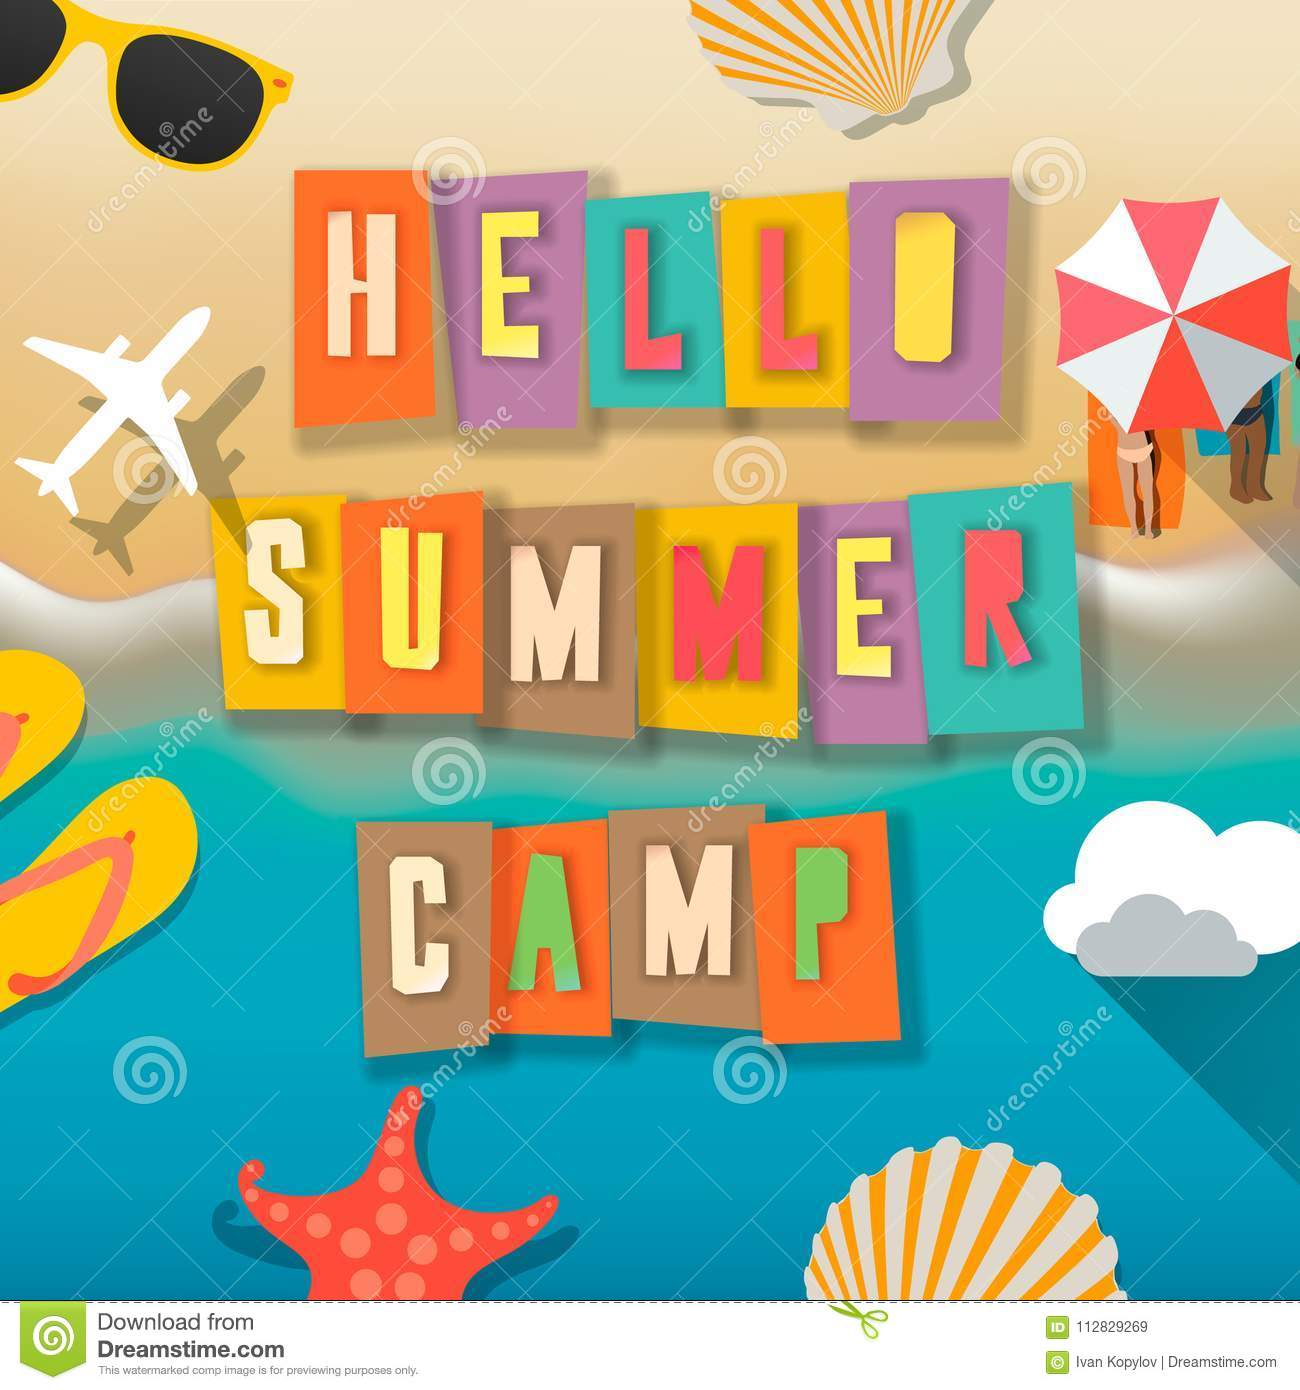 Outdoor Kinder Summer Camp For Kids Poster Summer Childs Outdoor Activities On